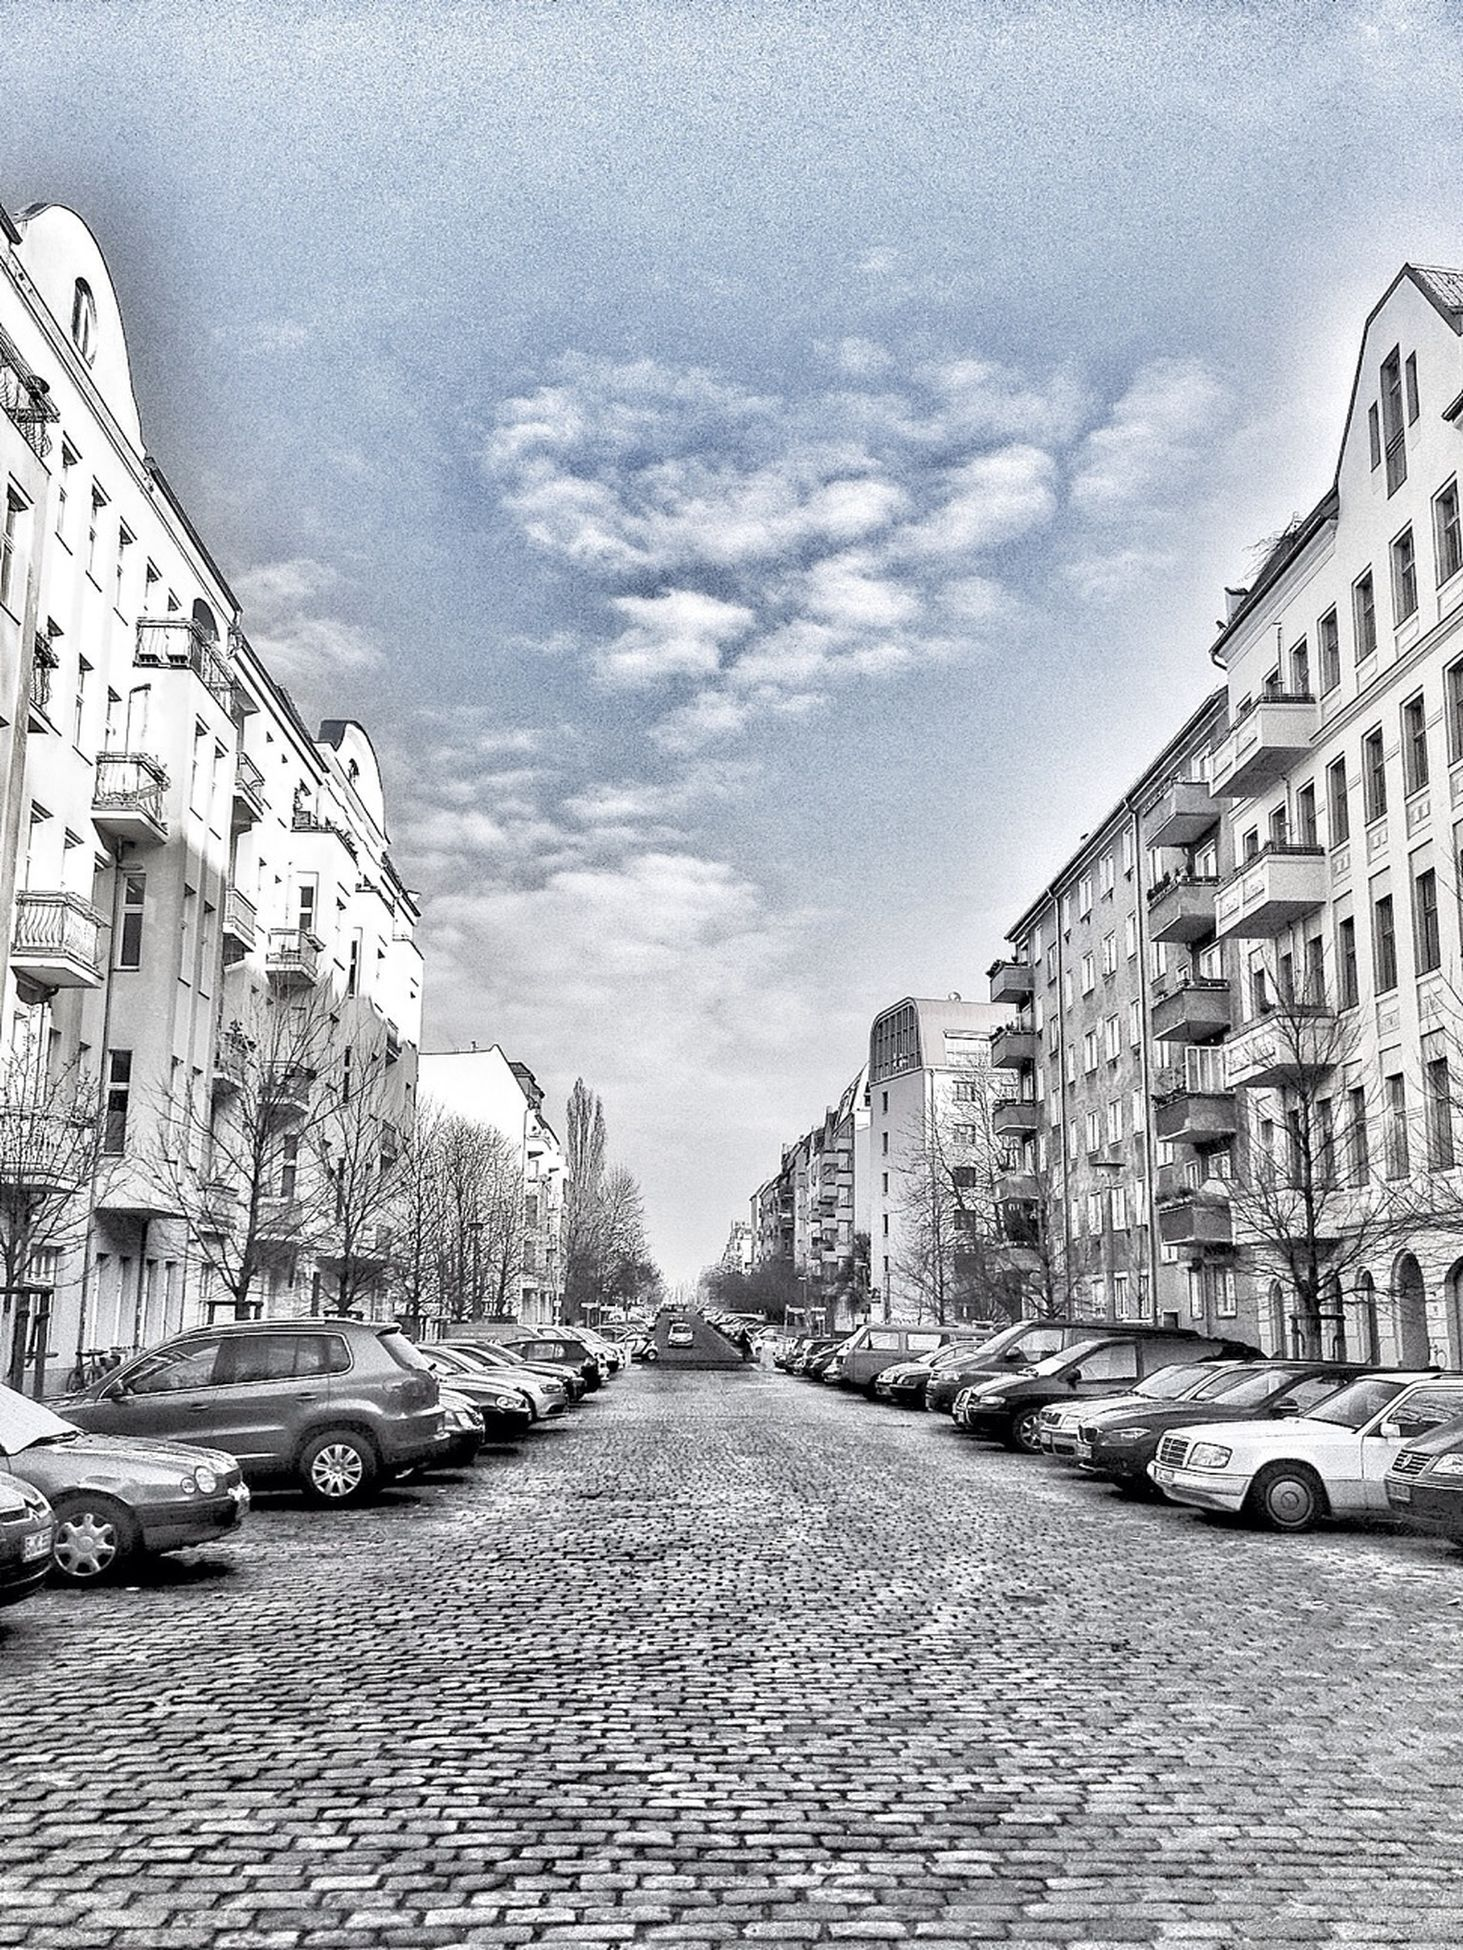 building exterior, architecture, city, street, built structure, building, residential structure, city life, car, outdoors, city street, residential building, land vehicle, the way forward, road, ancient civilization, history, historic, culture, ruined